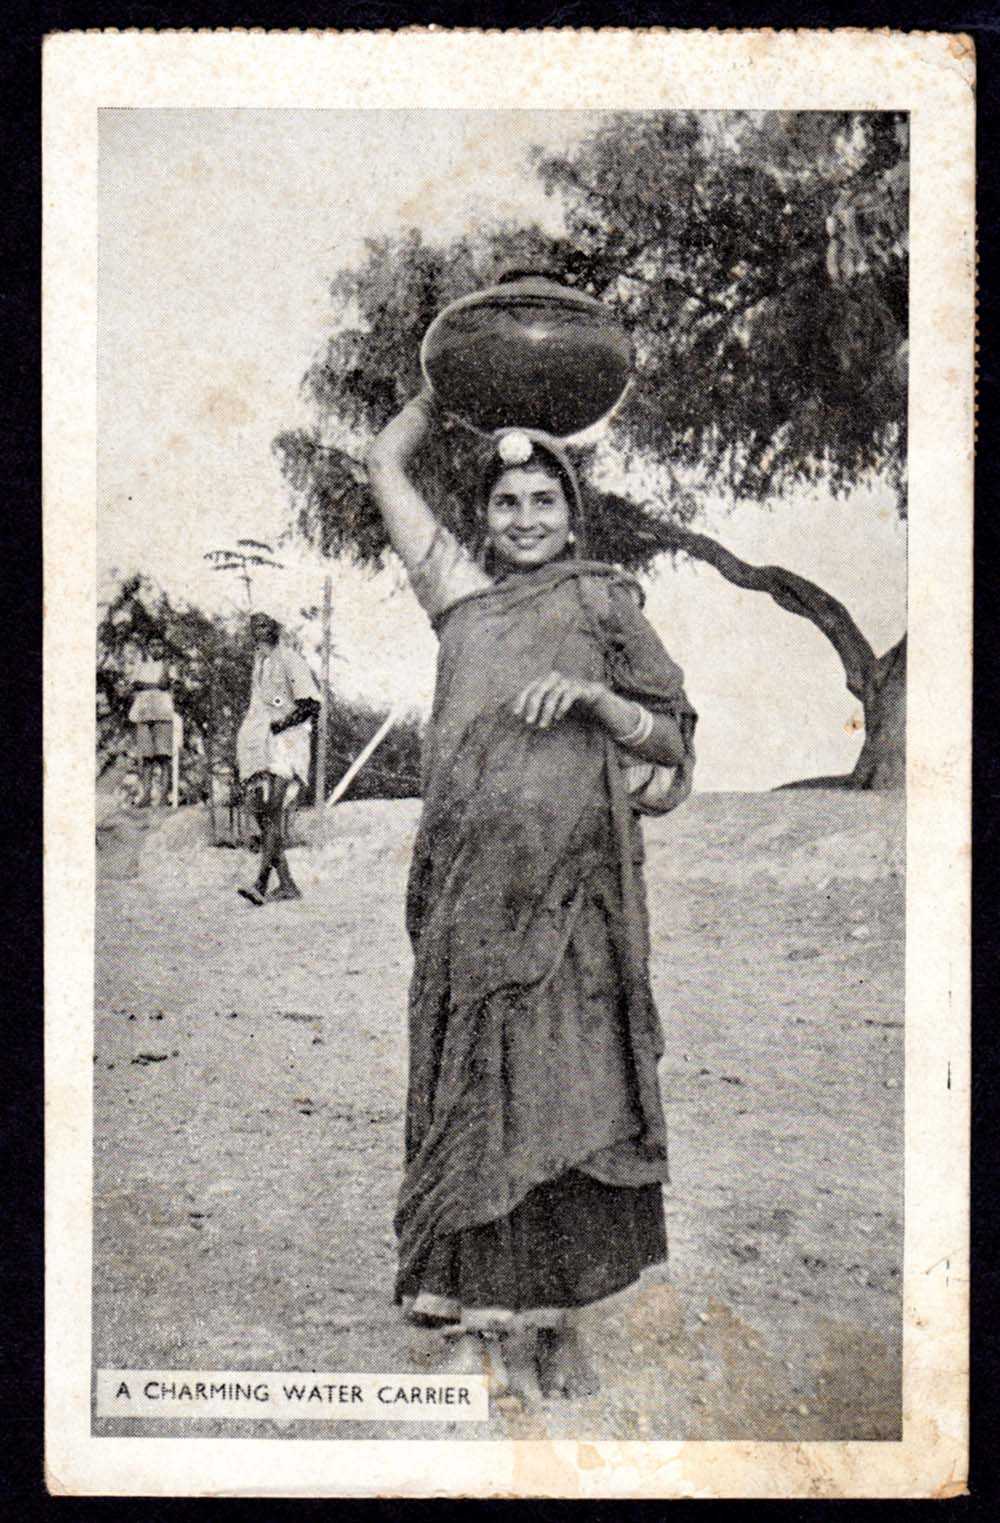 A Charming Water Carrier - India 1949